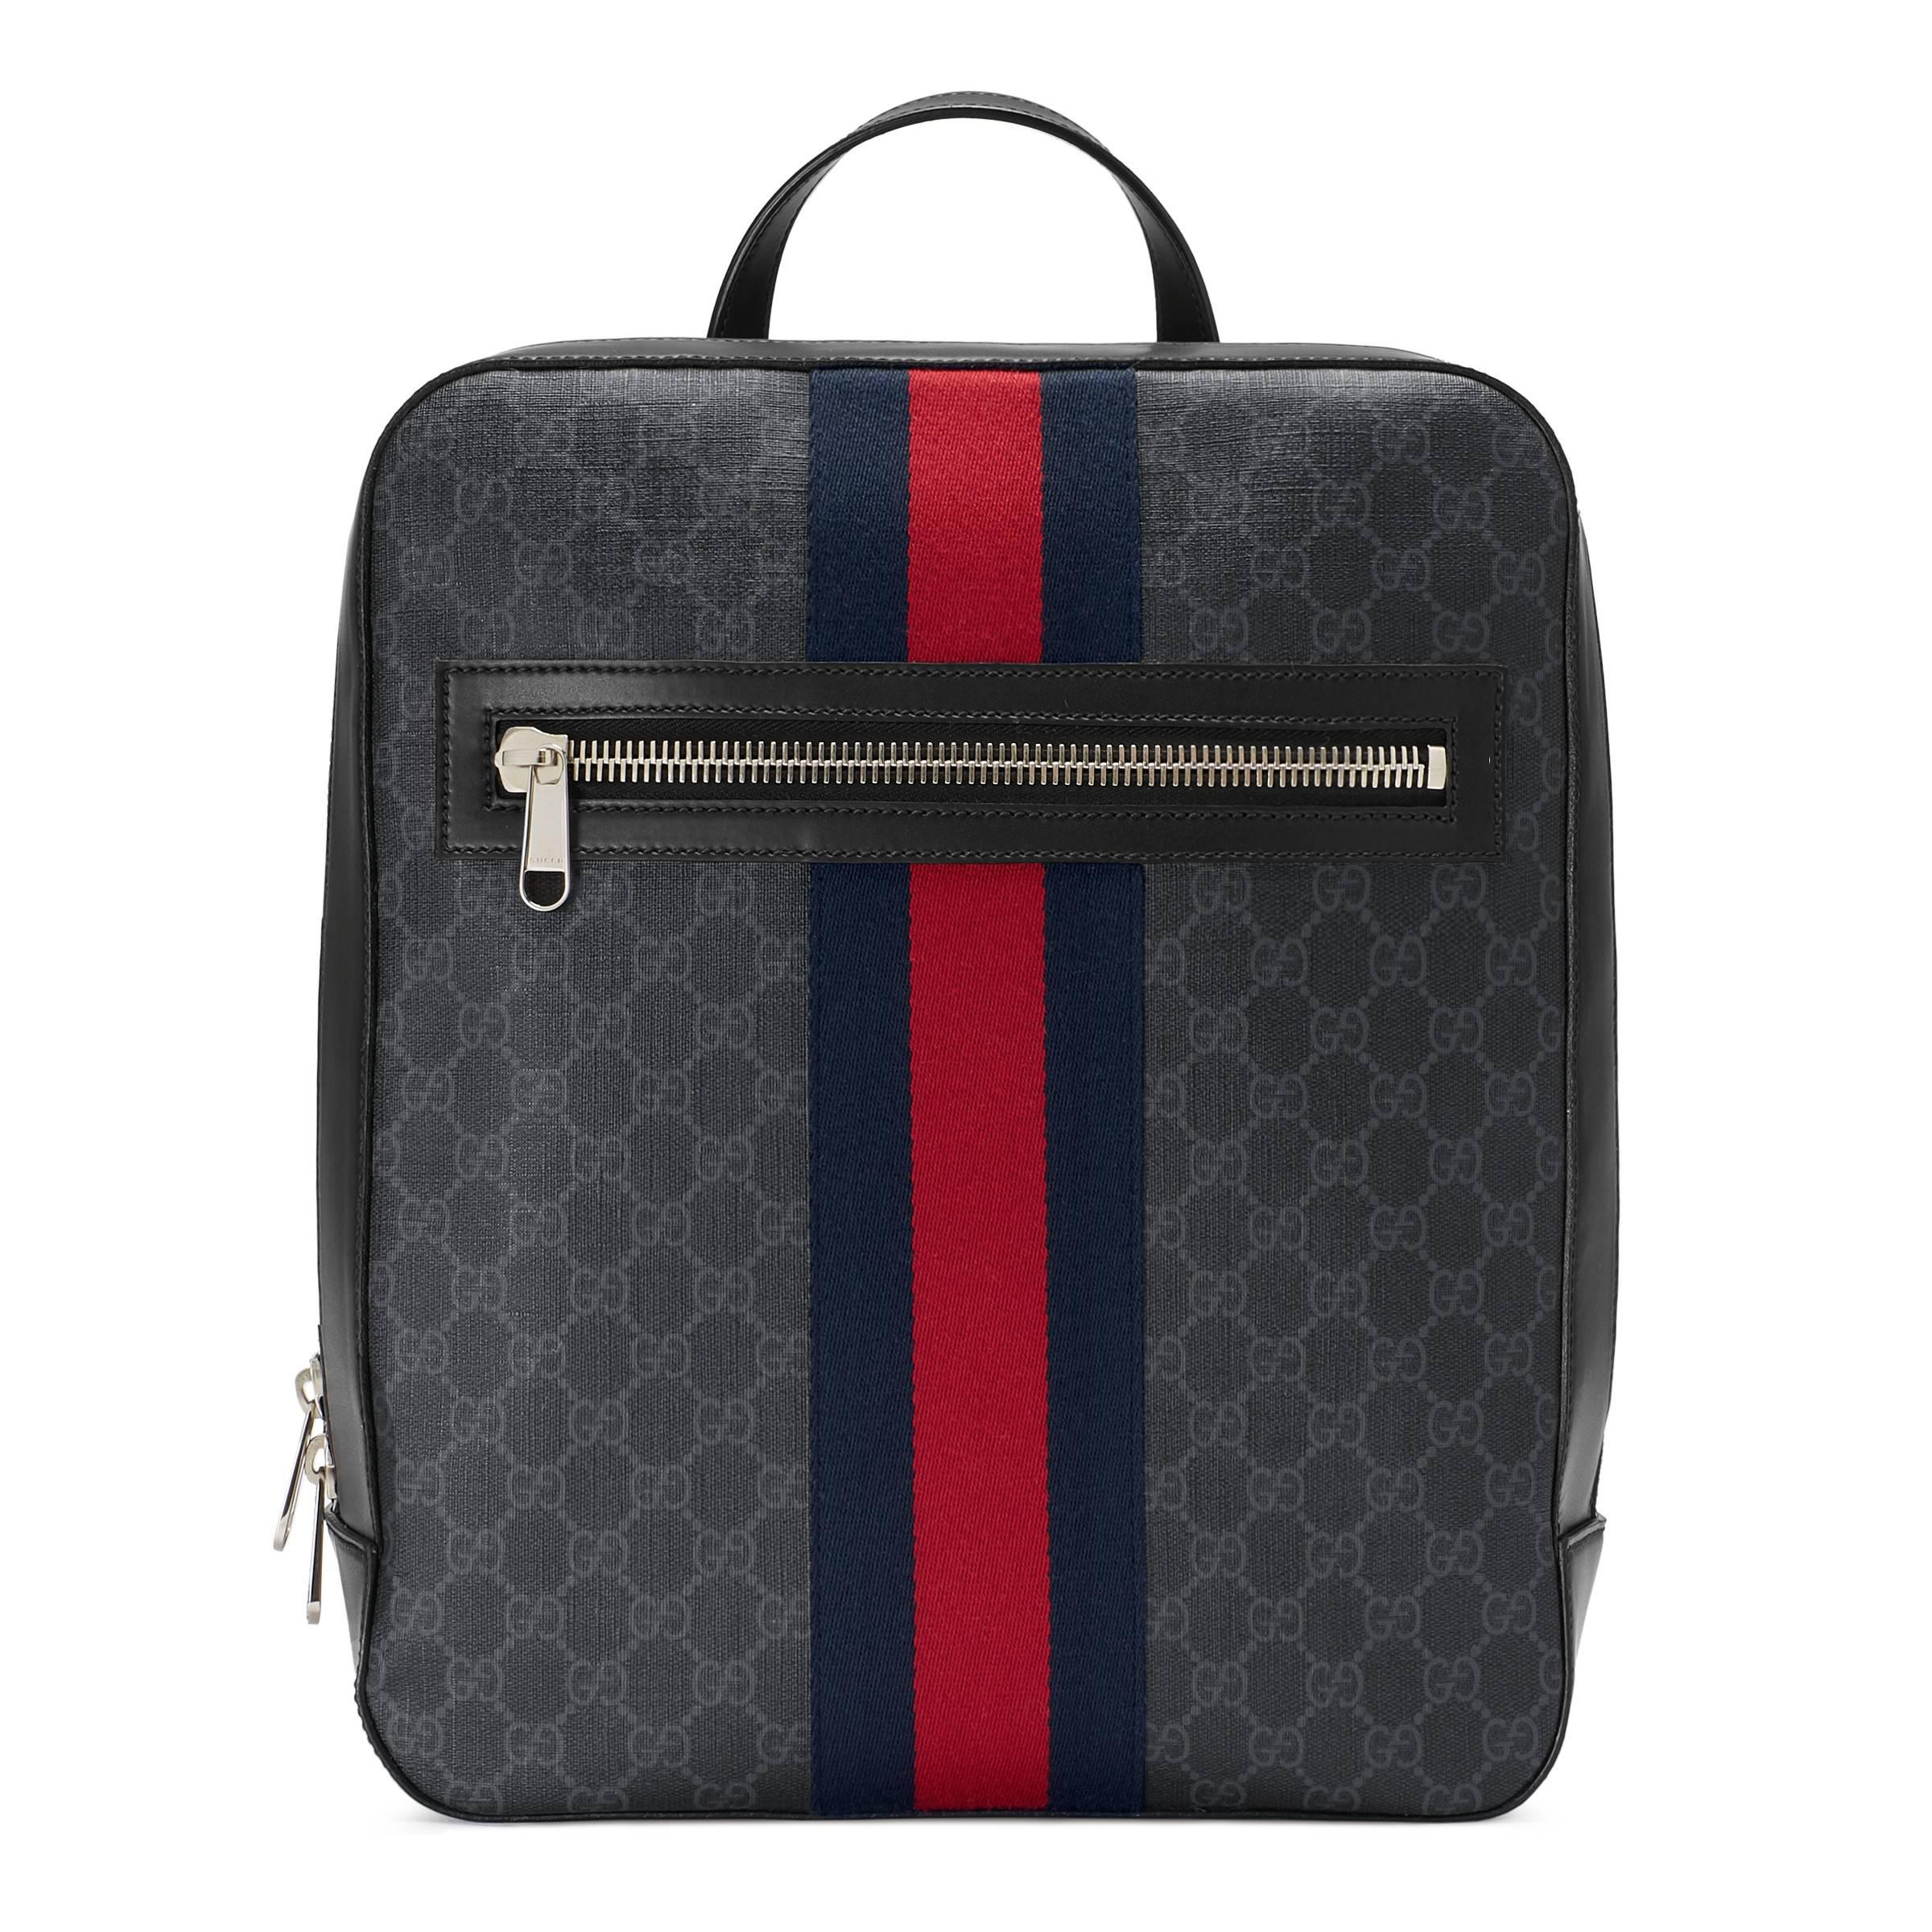 5ab9000a74e Gucci Gg Supreme Canvas Backpack in Black for Men - Lyst